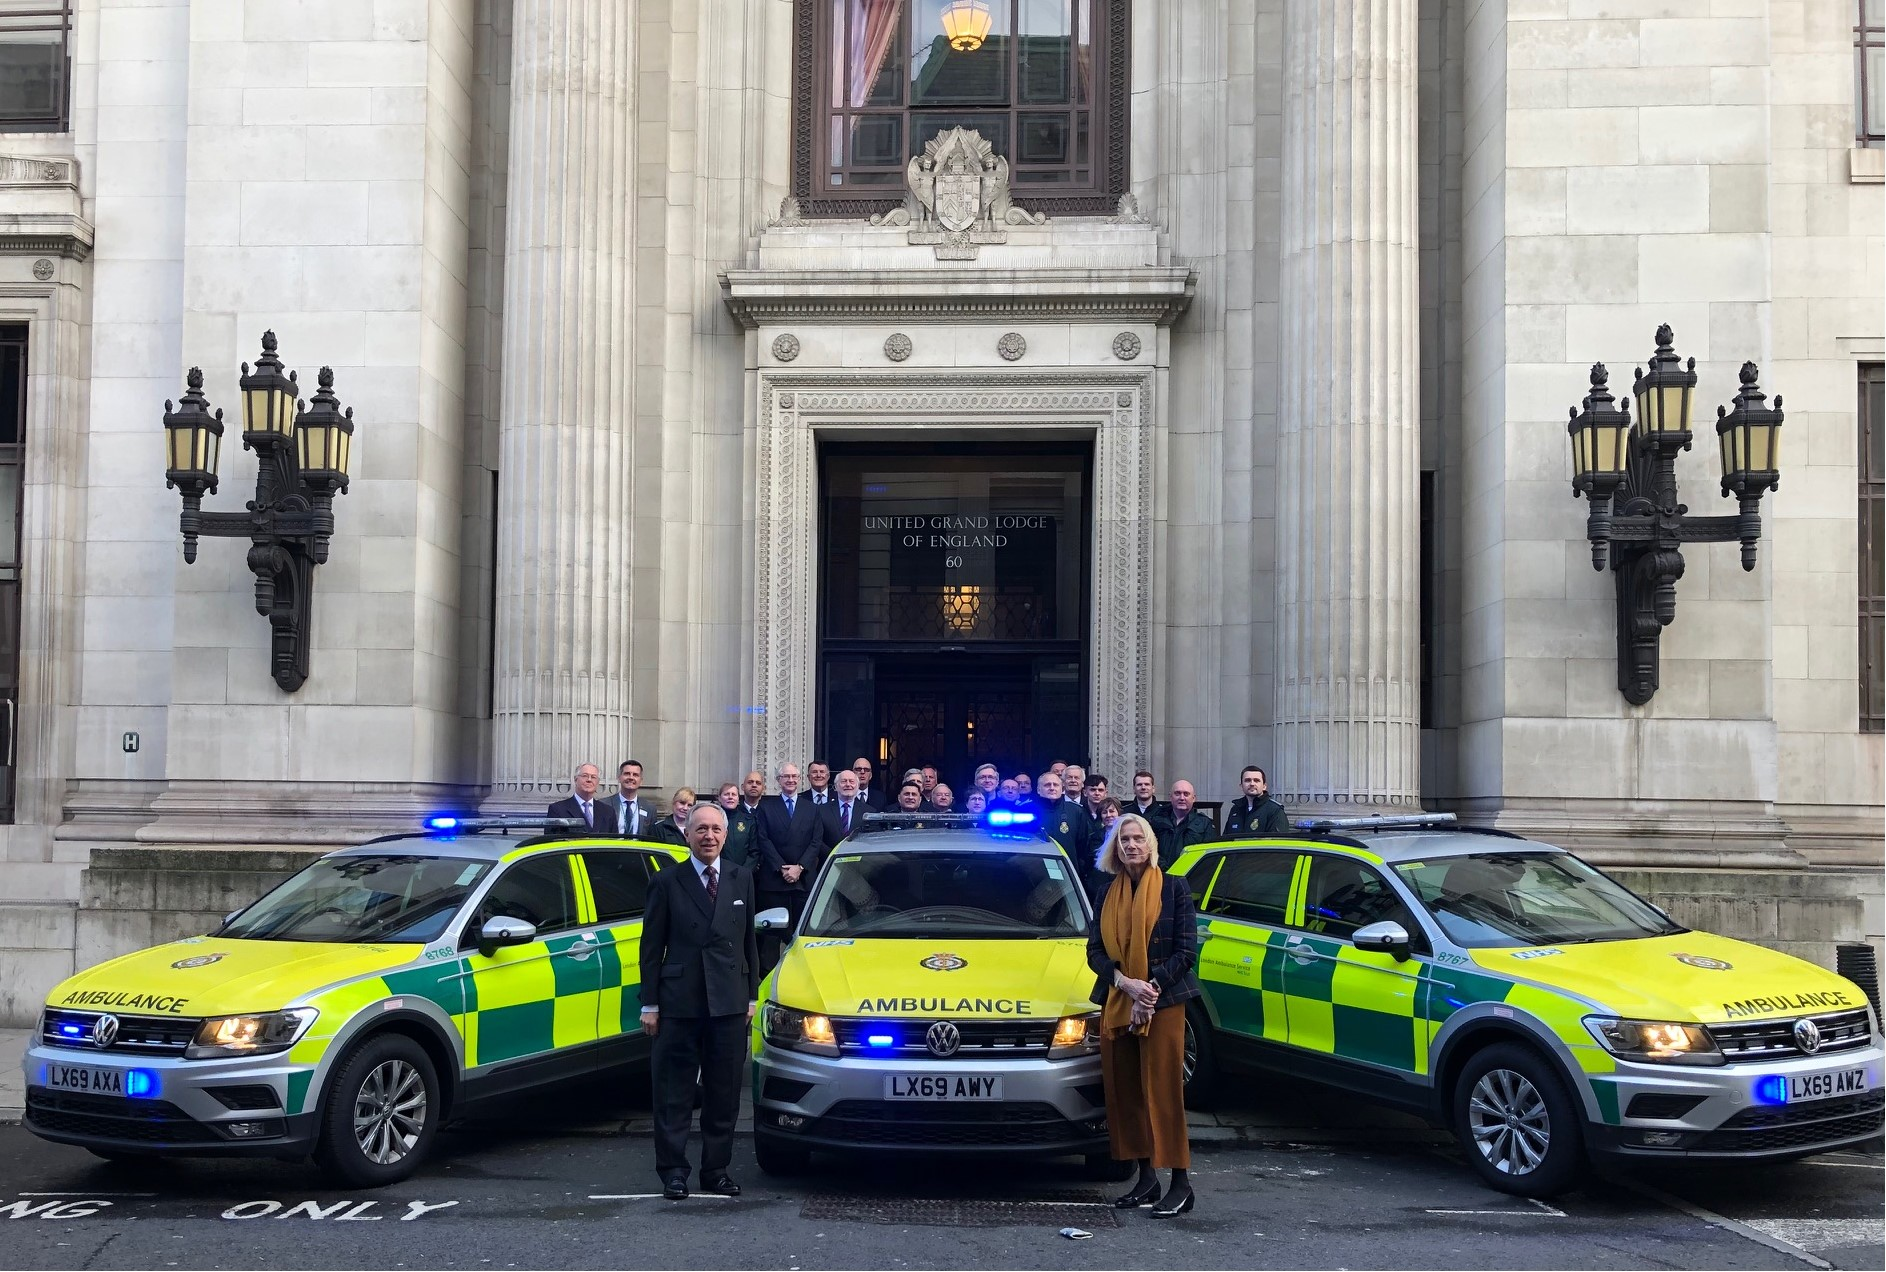 Three new response cars parked in front of the Freemasons building with people stood behind